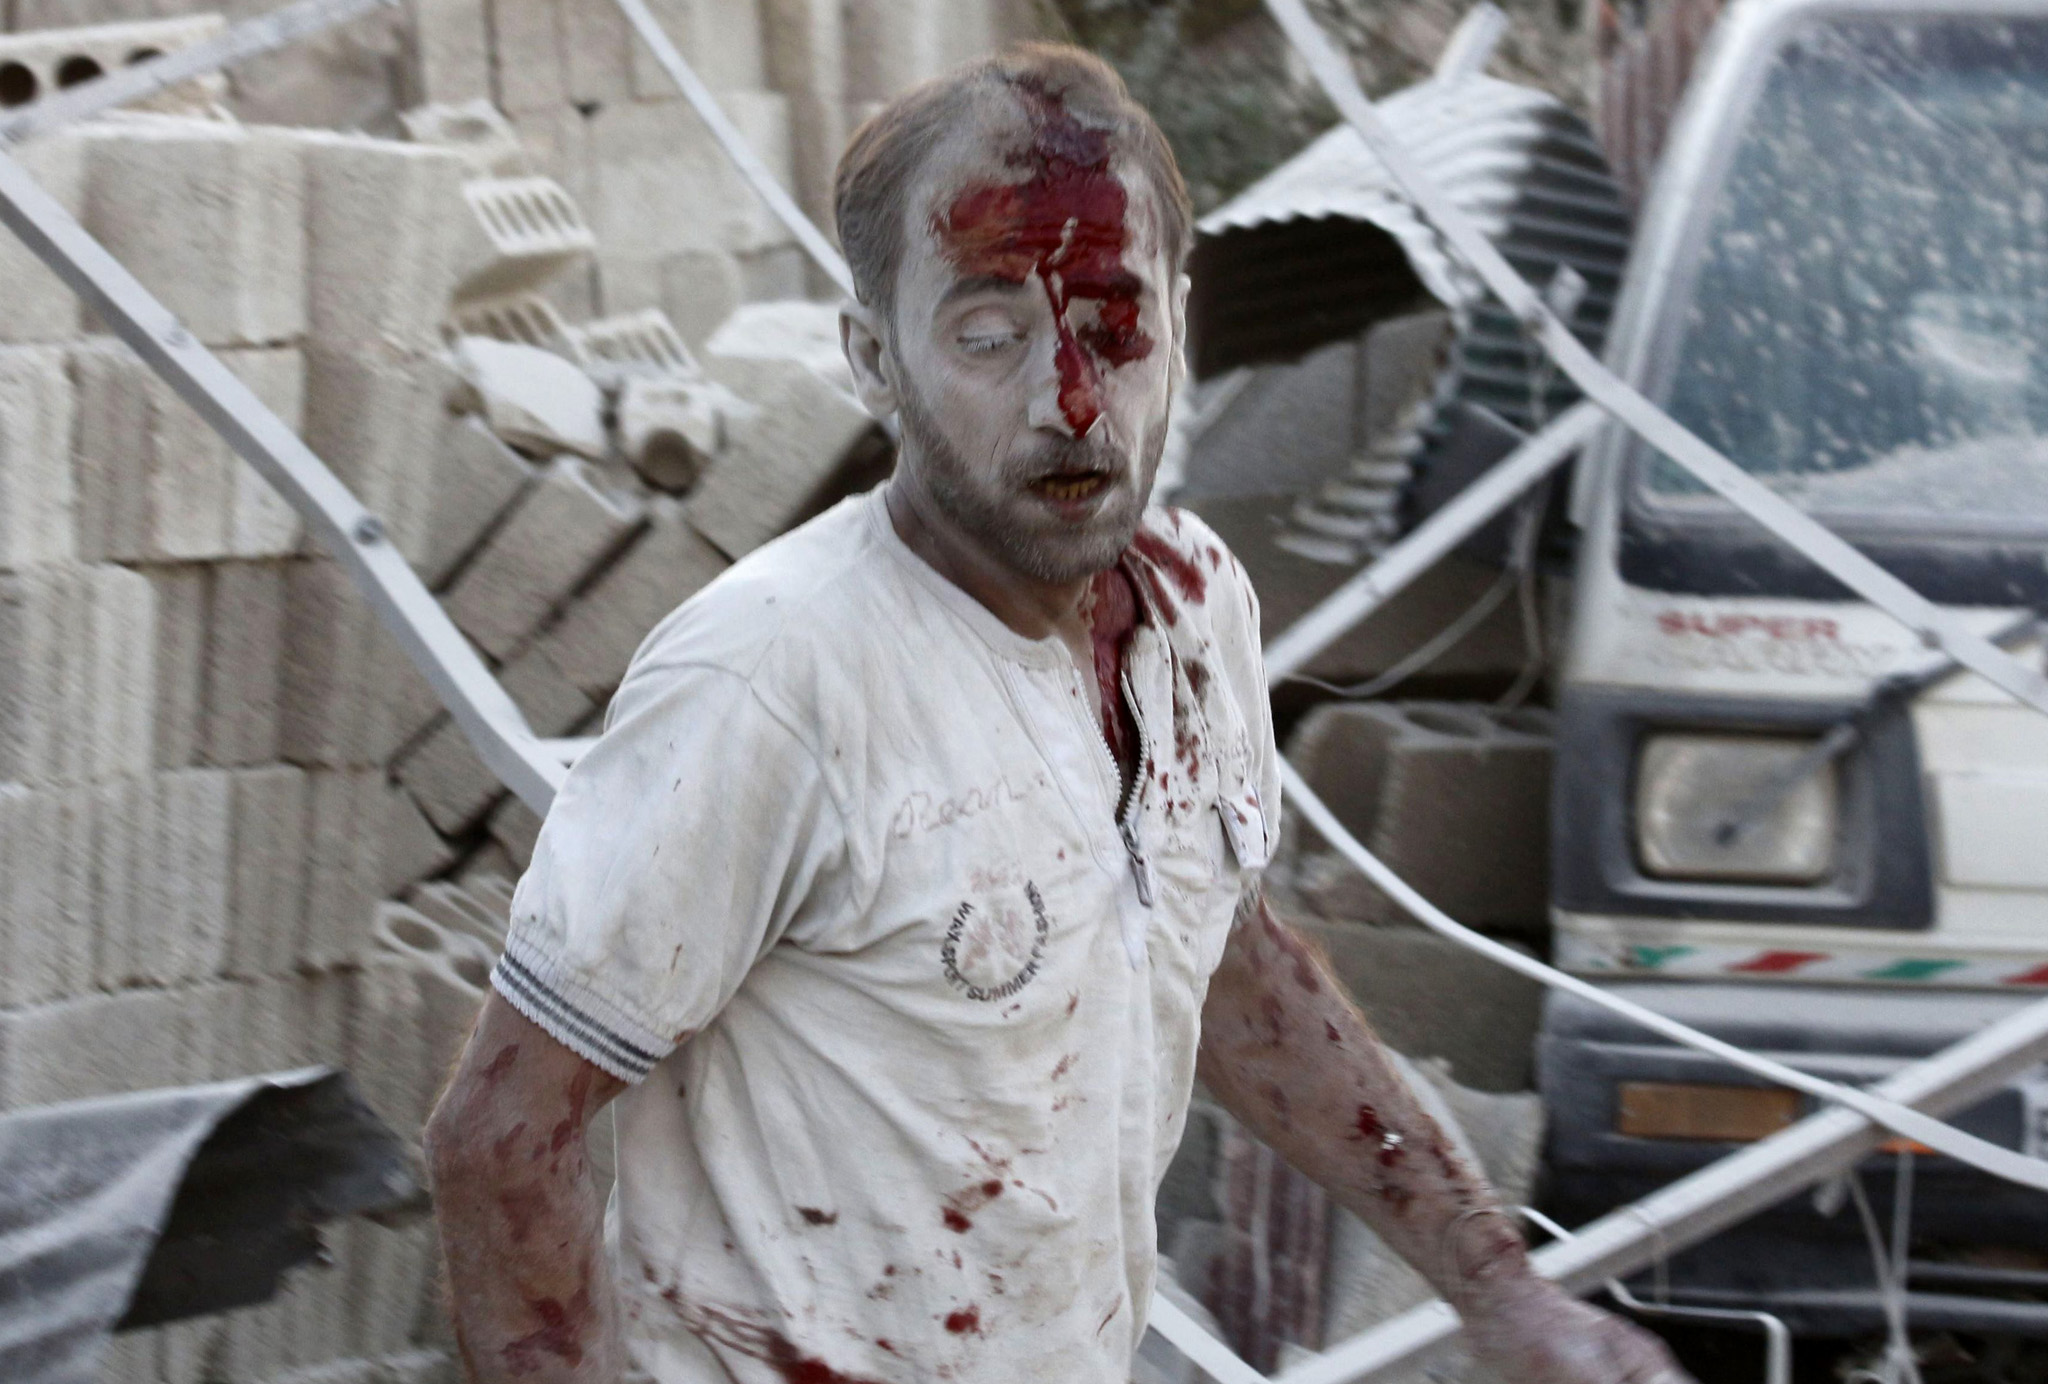 An injured man reacts at a damaged site hit by what activists said were two barrel bombs thrown by forces loyal to Syria's President Bashar al-Assad in the Qadi Askar district of Aleppo August 10, 2014. REUTERS/Rami Zayat